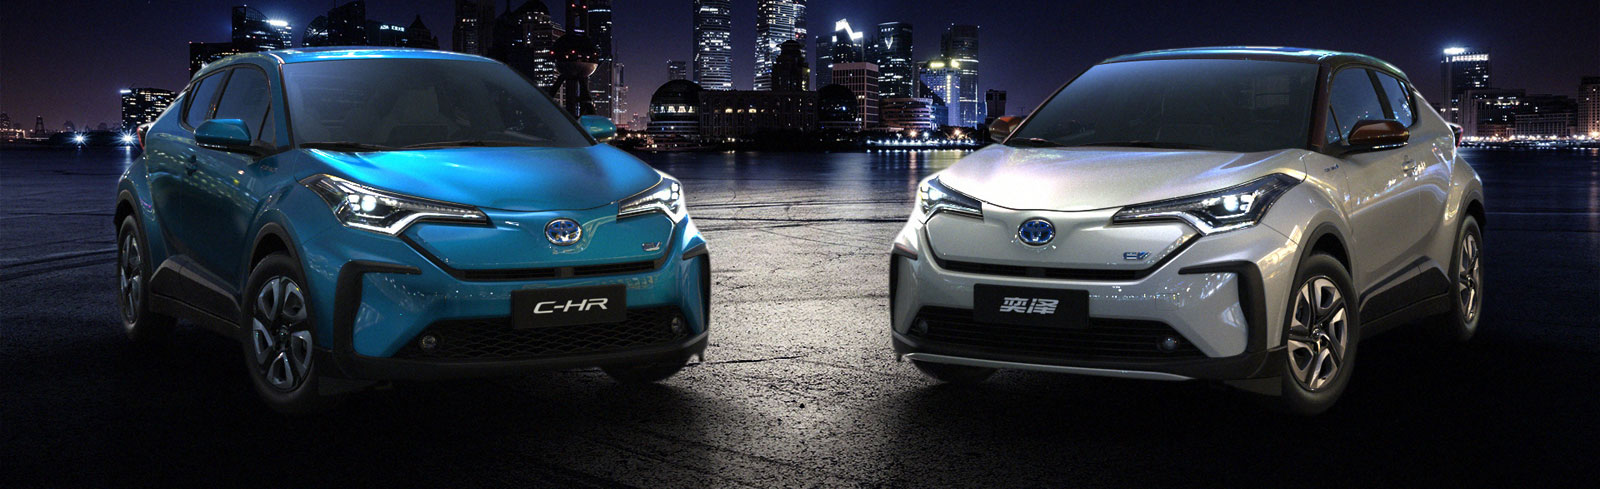 Toyota showcases the all-electric IZOA and C-HR at Auto Shanghai 2019